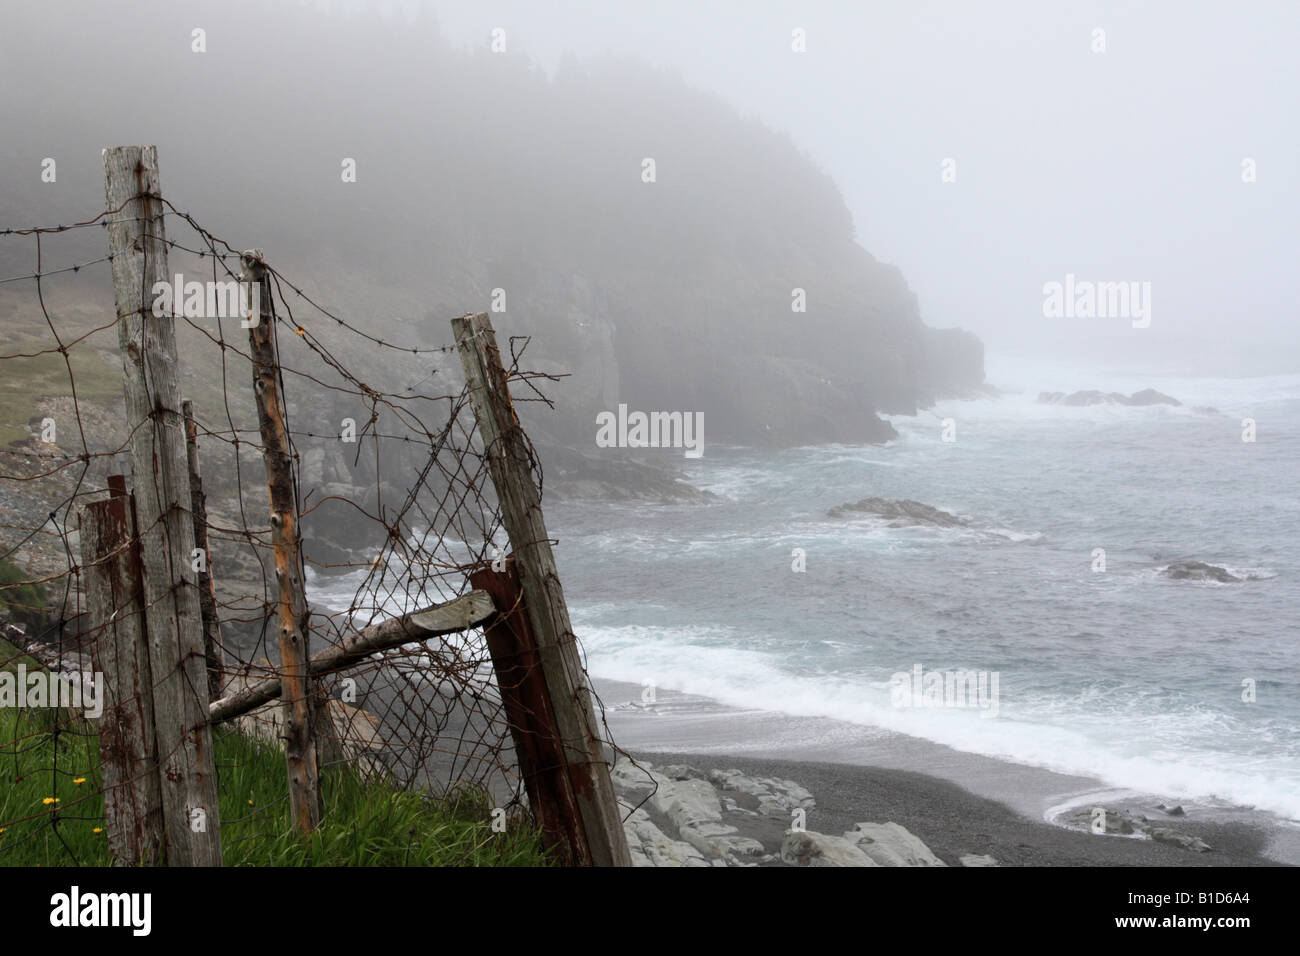 Heavy fog and ragging waves upon rugged shoreline at Logy Bay Middle Cove Outer Cove in Newfoundland - Stock Image